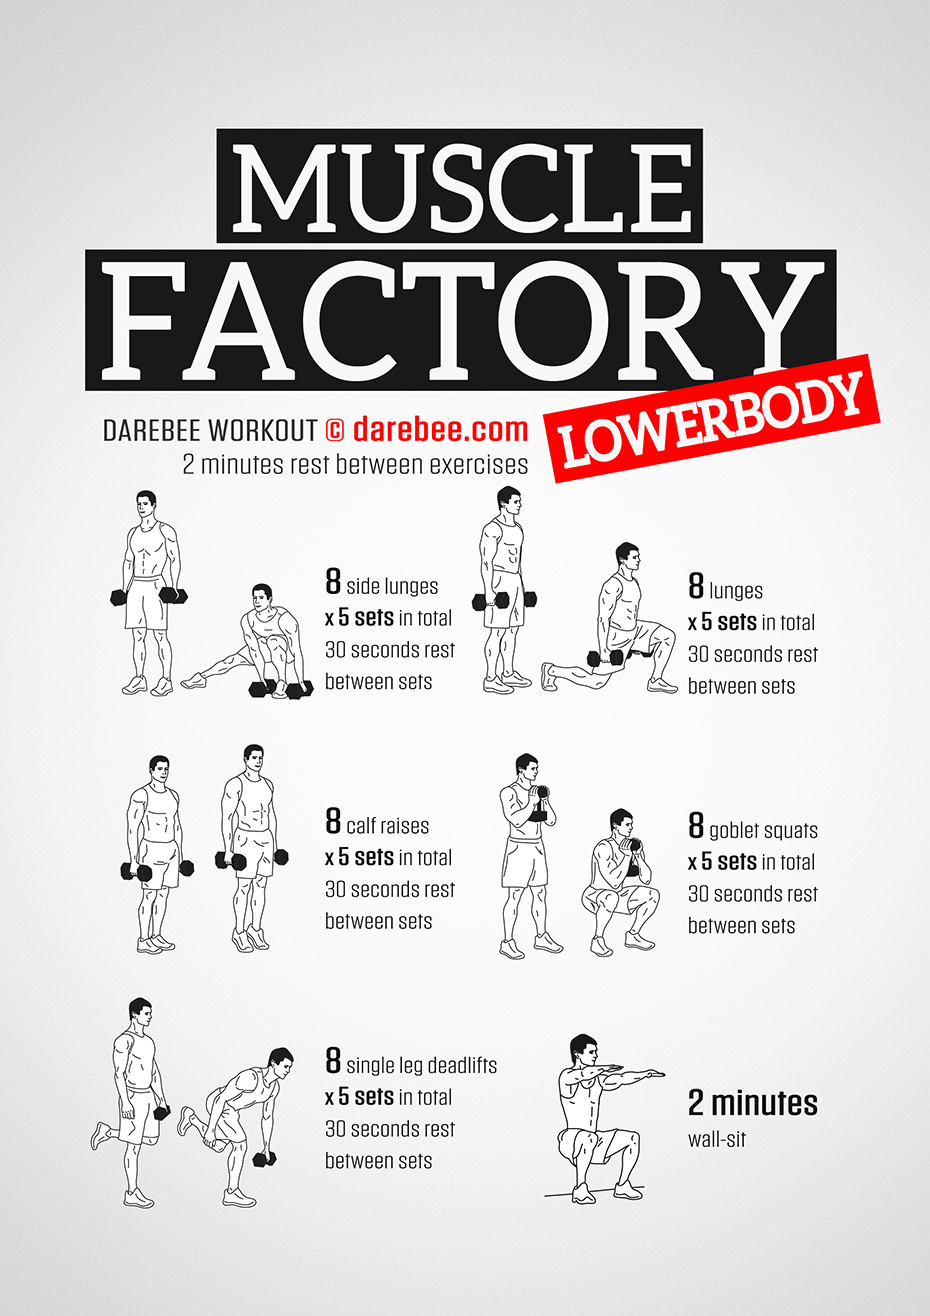 Muscle Factory Lowerbody